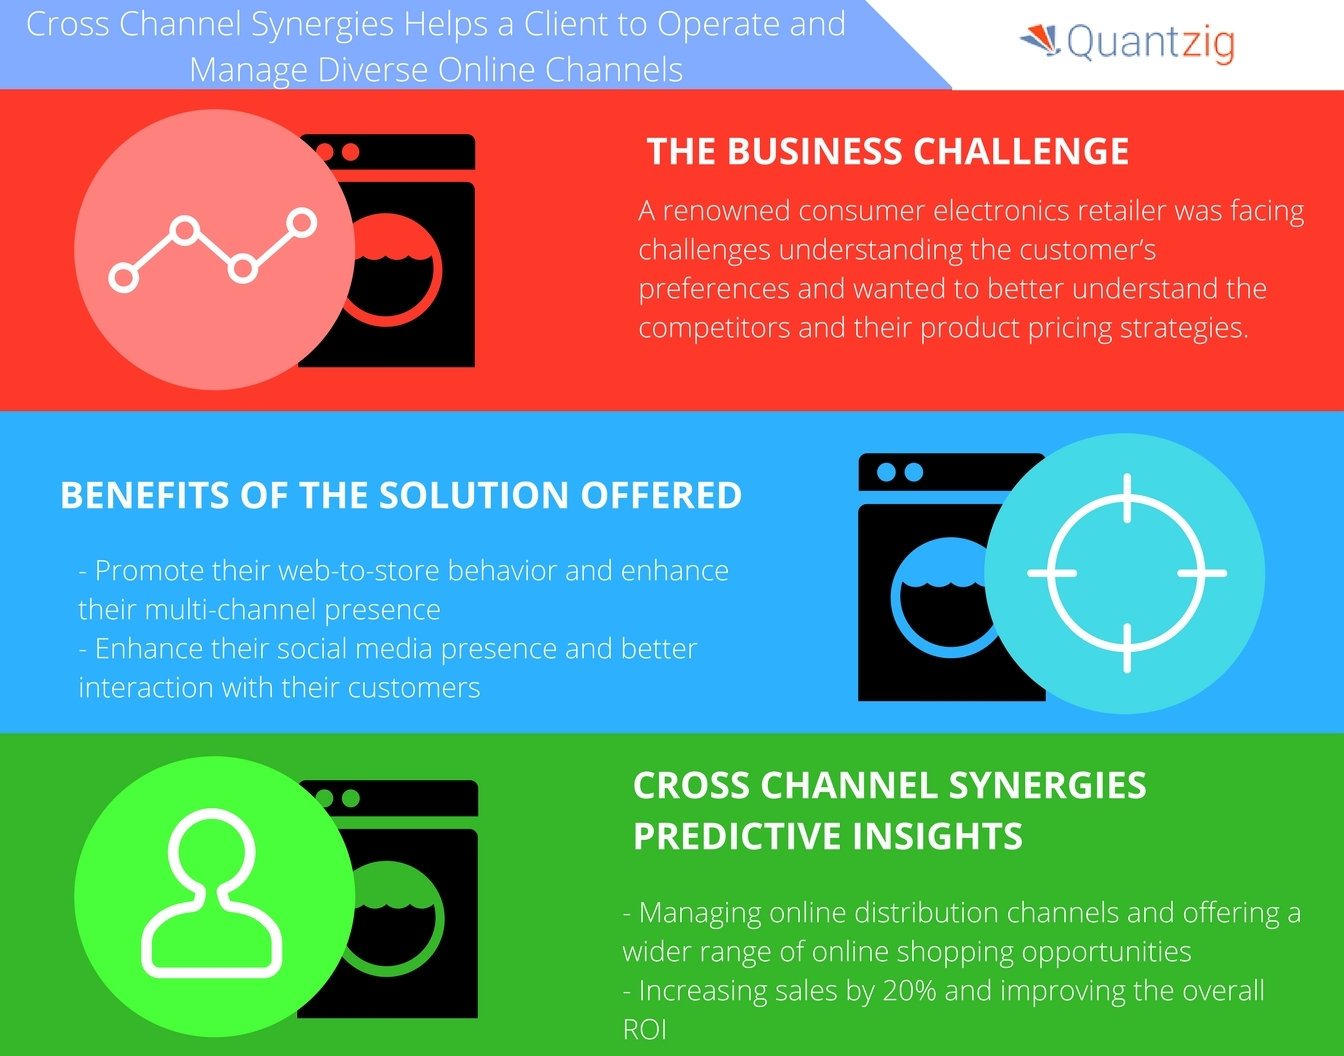 Cross Channel Synergies for a Consumer Electronics Retailer